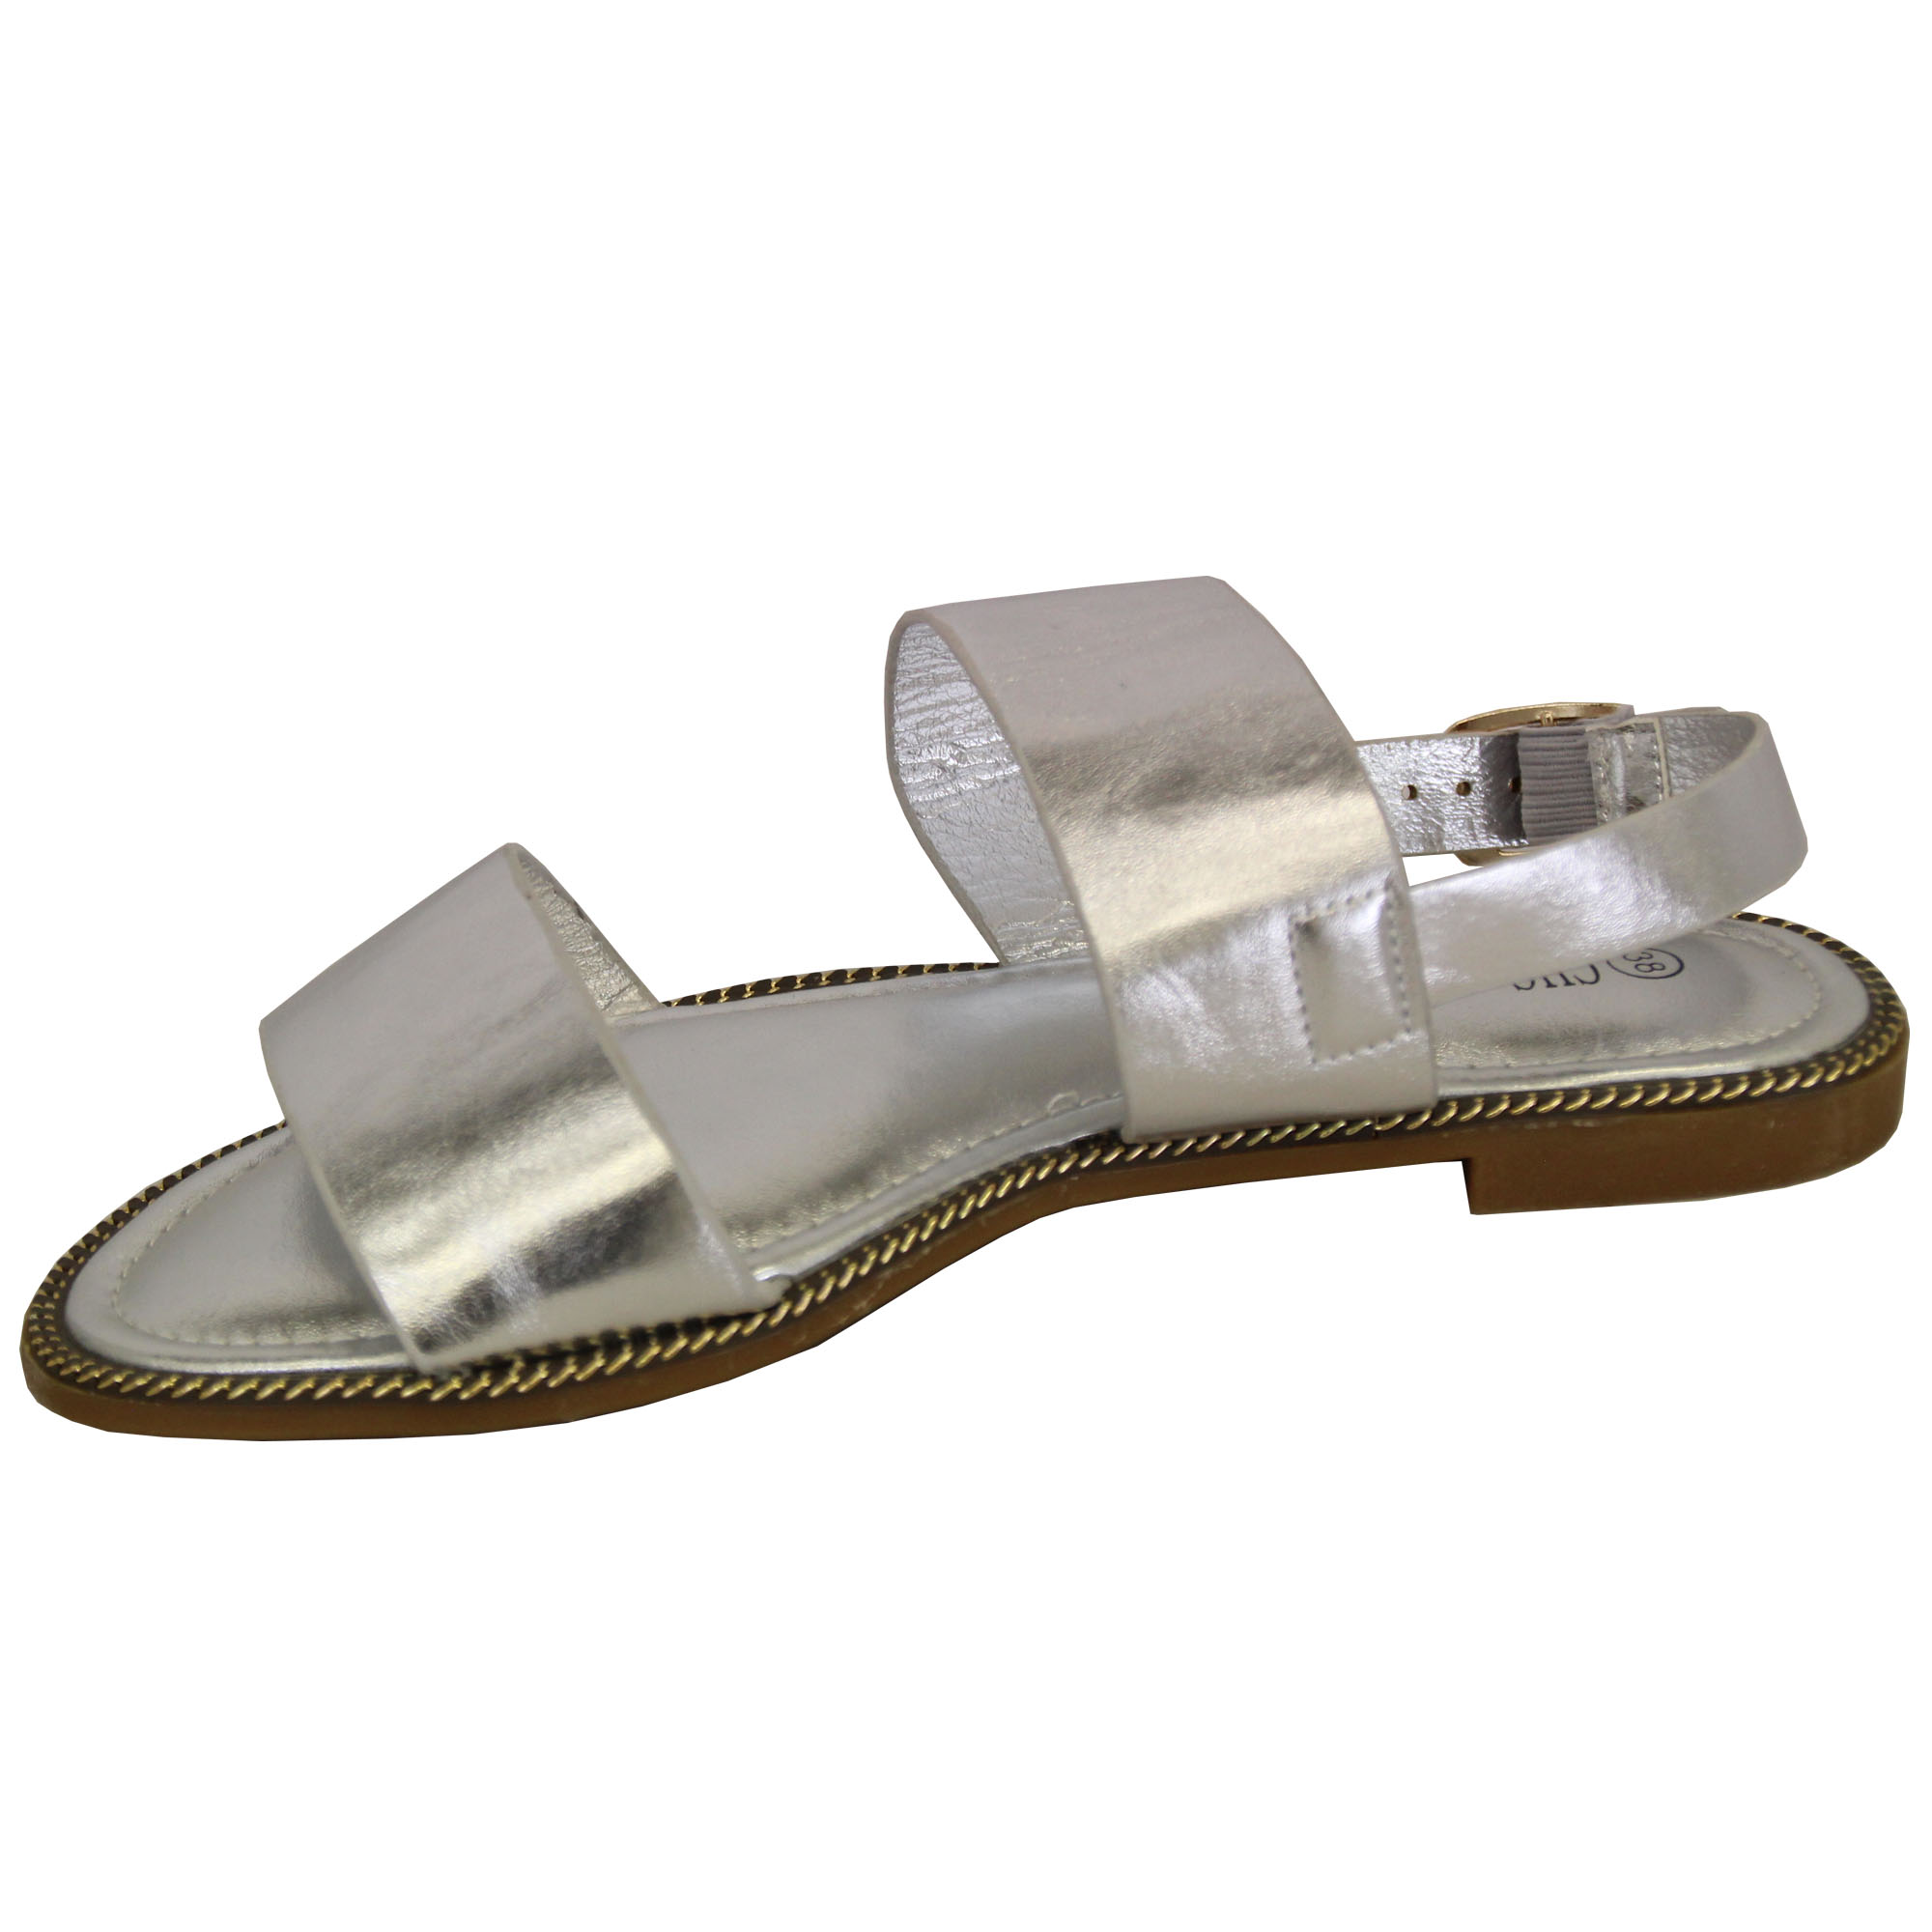 Ladies-Flat-Sandals-Slip-On-Womens-Open-Toe-Shoes-Buckle-Fashion-Wedding-Summer thumbnail 13